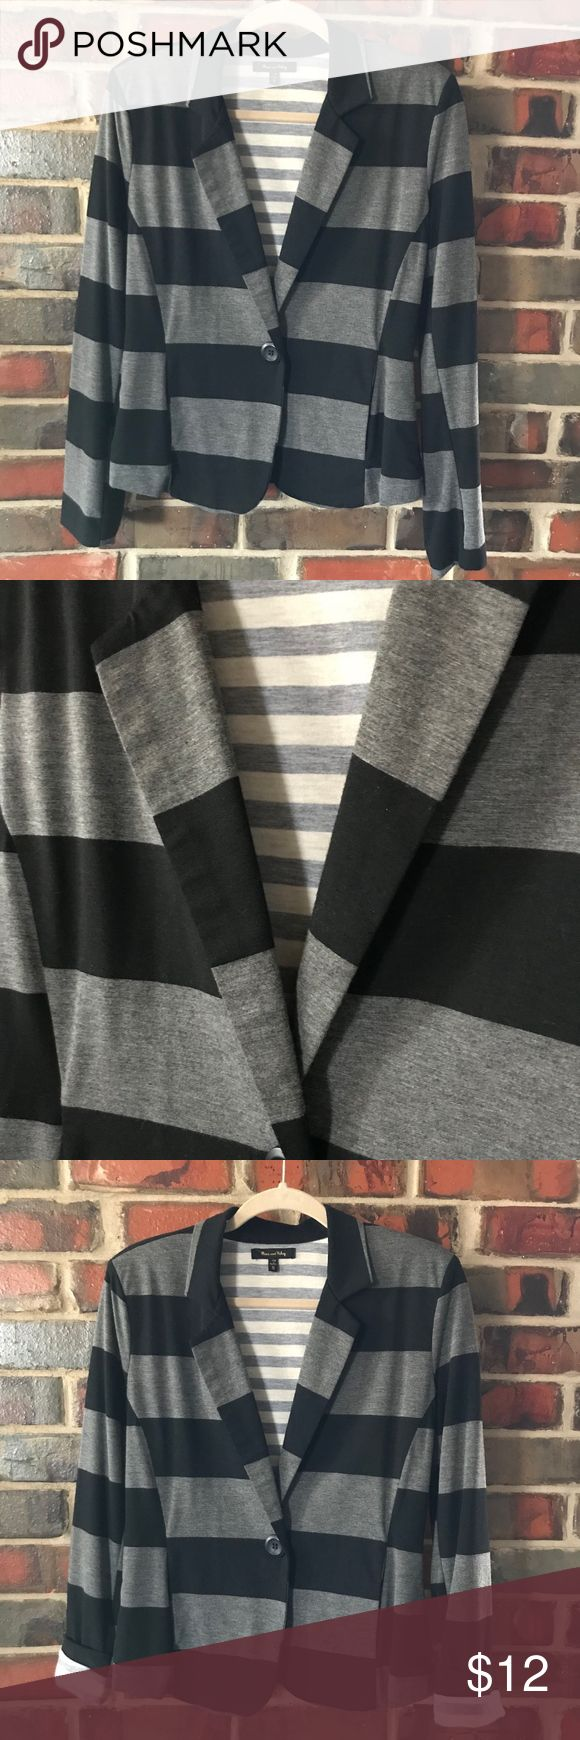 Super Soft Black & Gray Stripe, lined Jacket This super soft jacket is fully lined in a contrasting gray & white stripe fabric. Looks great with jeans, dressed down with a tee or up with a dressier shirt or tank. Sleeves can be turned up for a peek of contrasting fabric. Both fabrics are a super comfy & soft t-shirt fabric. Black & Gray stripe is polyester, rayon & spandex blend. Gray & white fabric is 100% polyester. Hand wash, lay flat to dry. Max & Riley Jackets & Coats Blazers